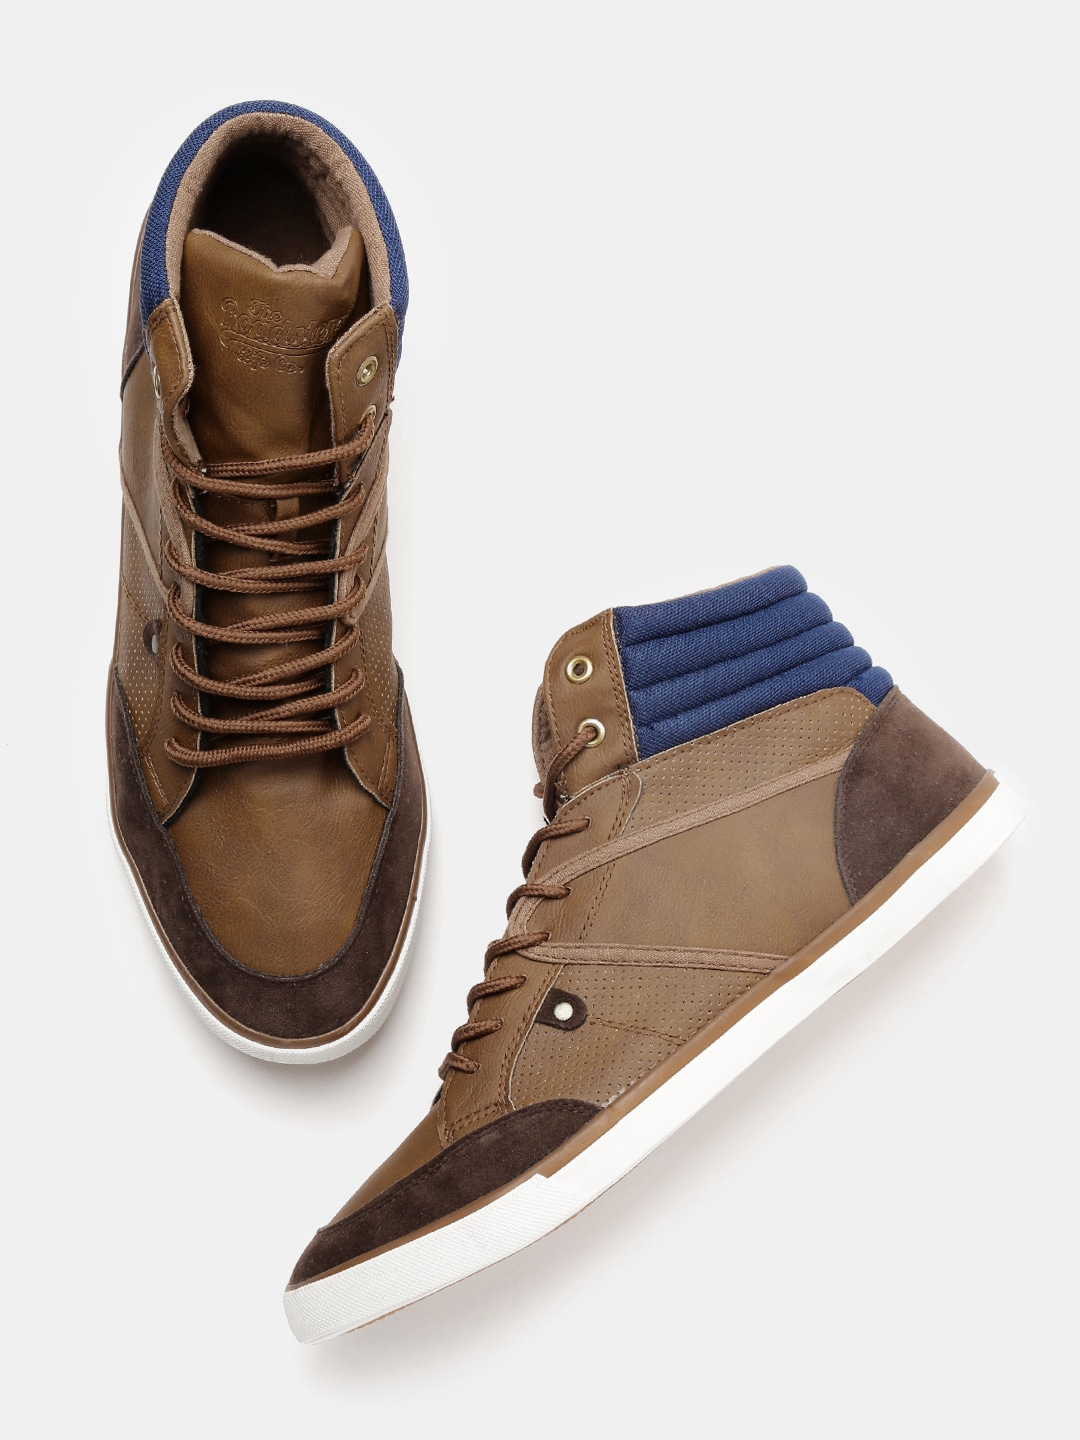 74830b5a7708 High Top Shoes - Buy High Top Shoes online in India